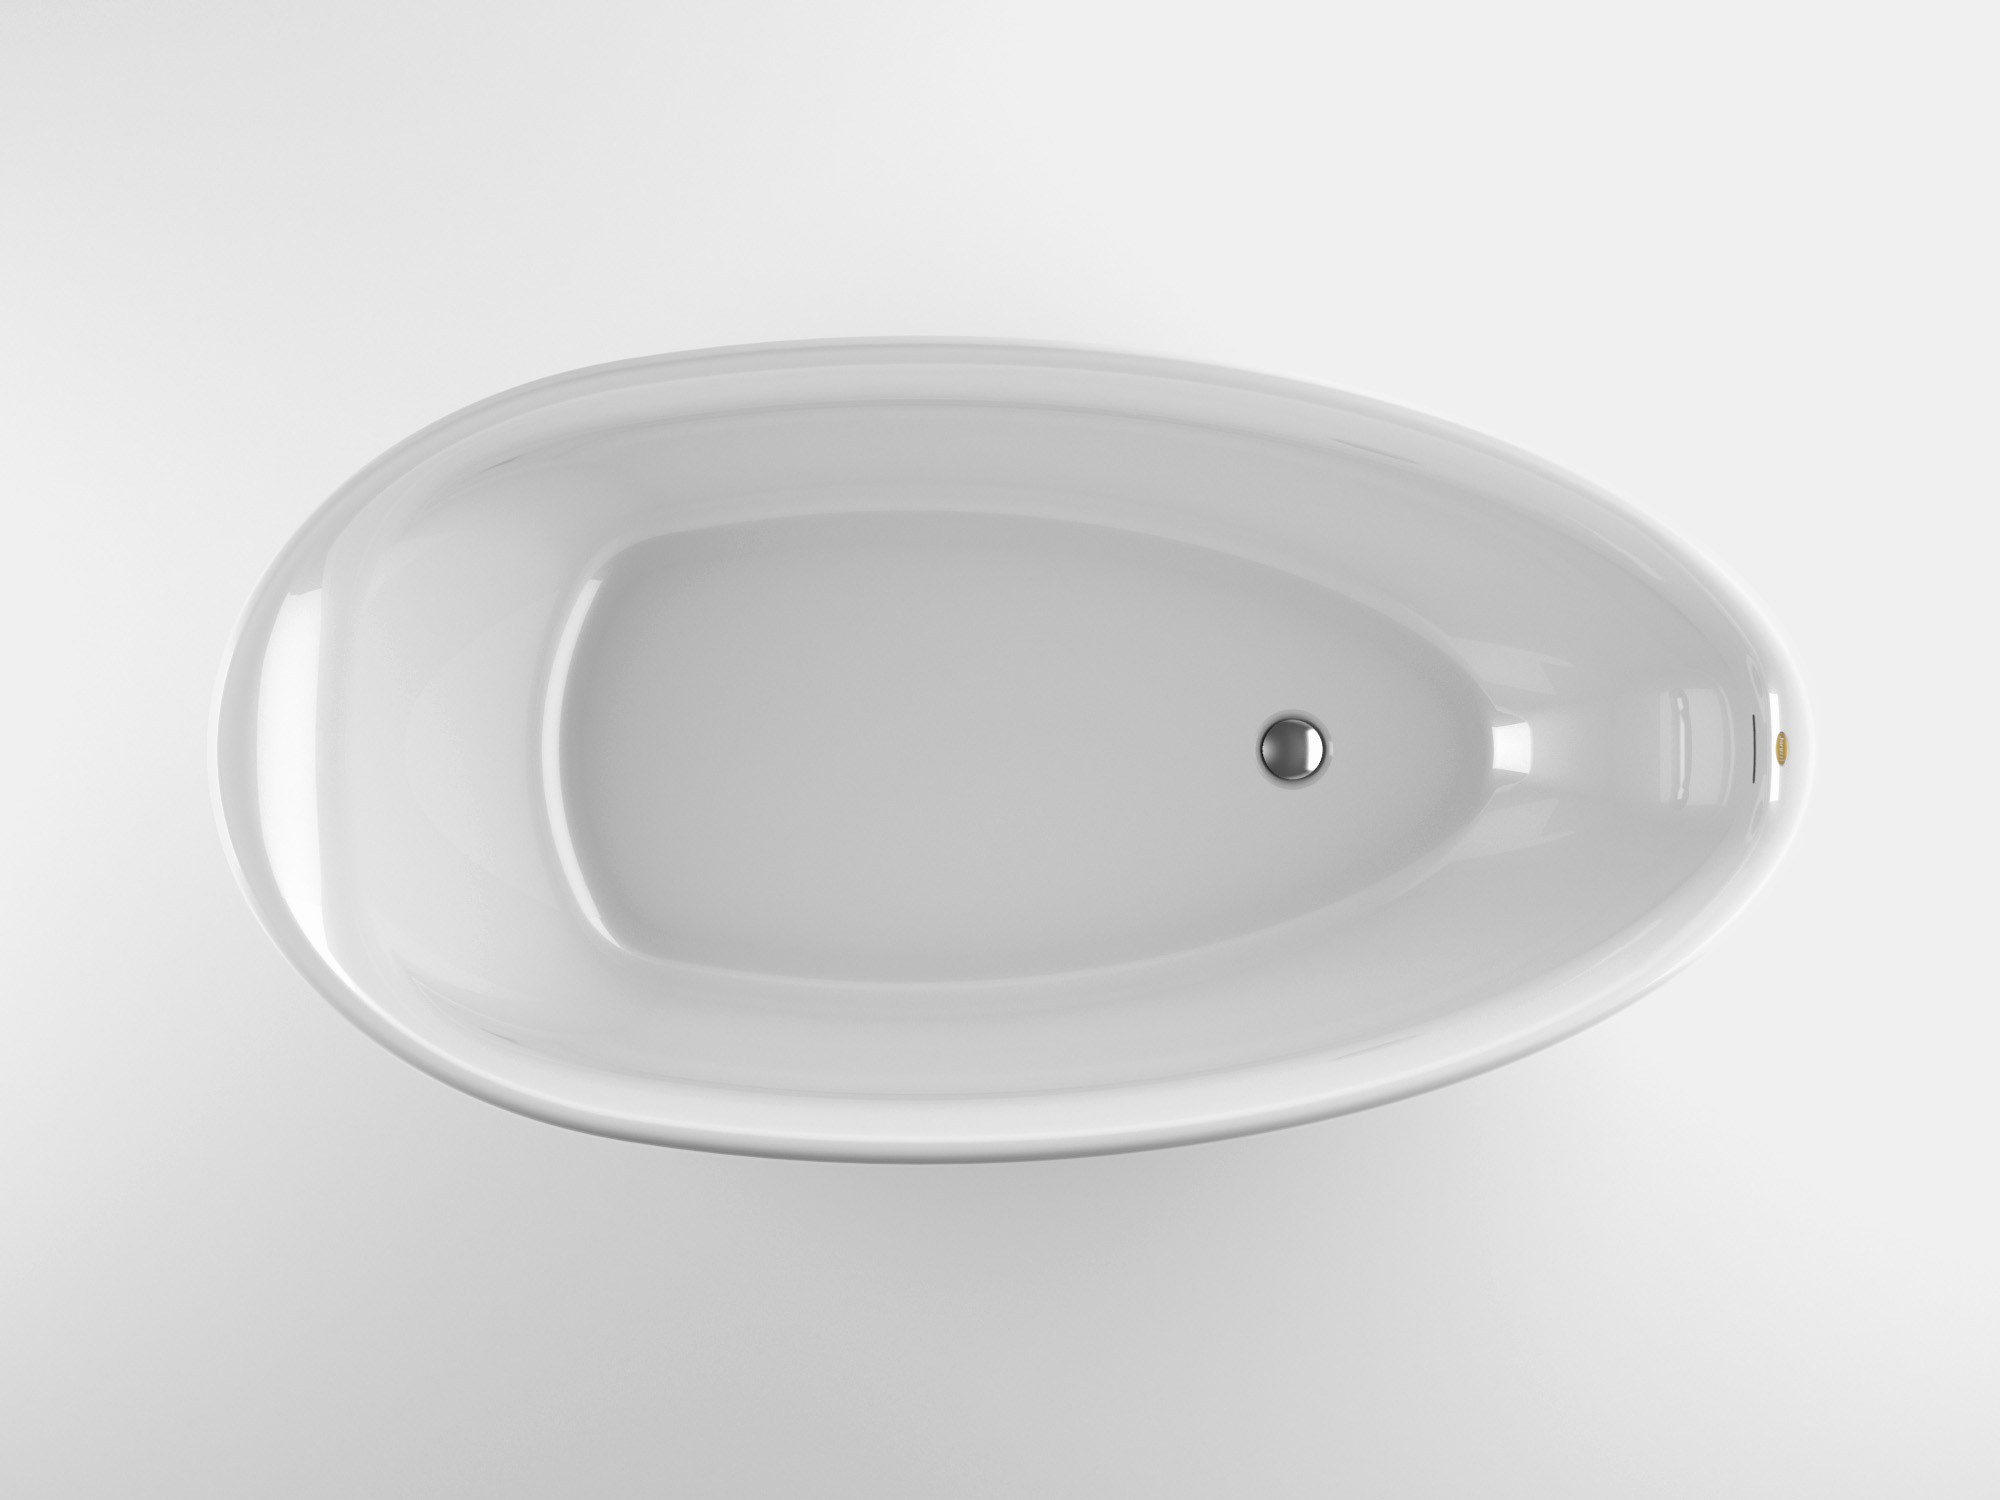 Freestanding oval acrylic bathtub desire by jacuzzi europe for European bathtub